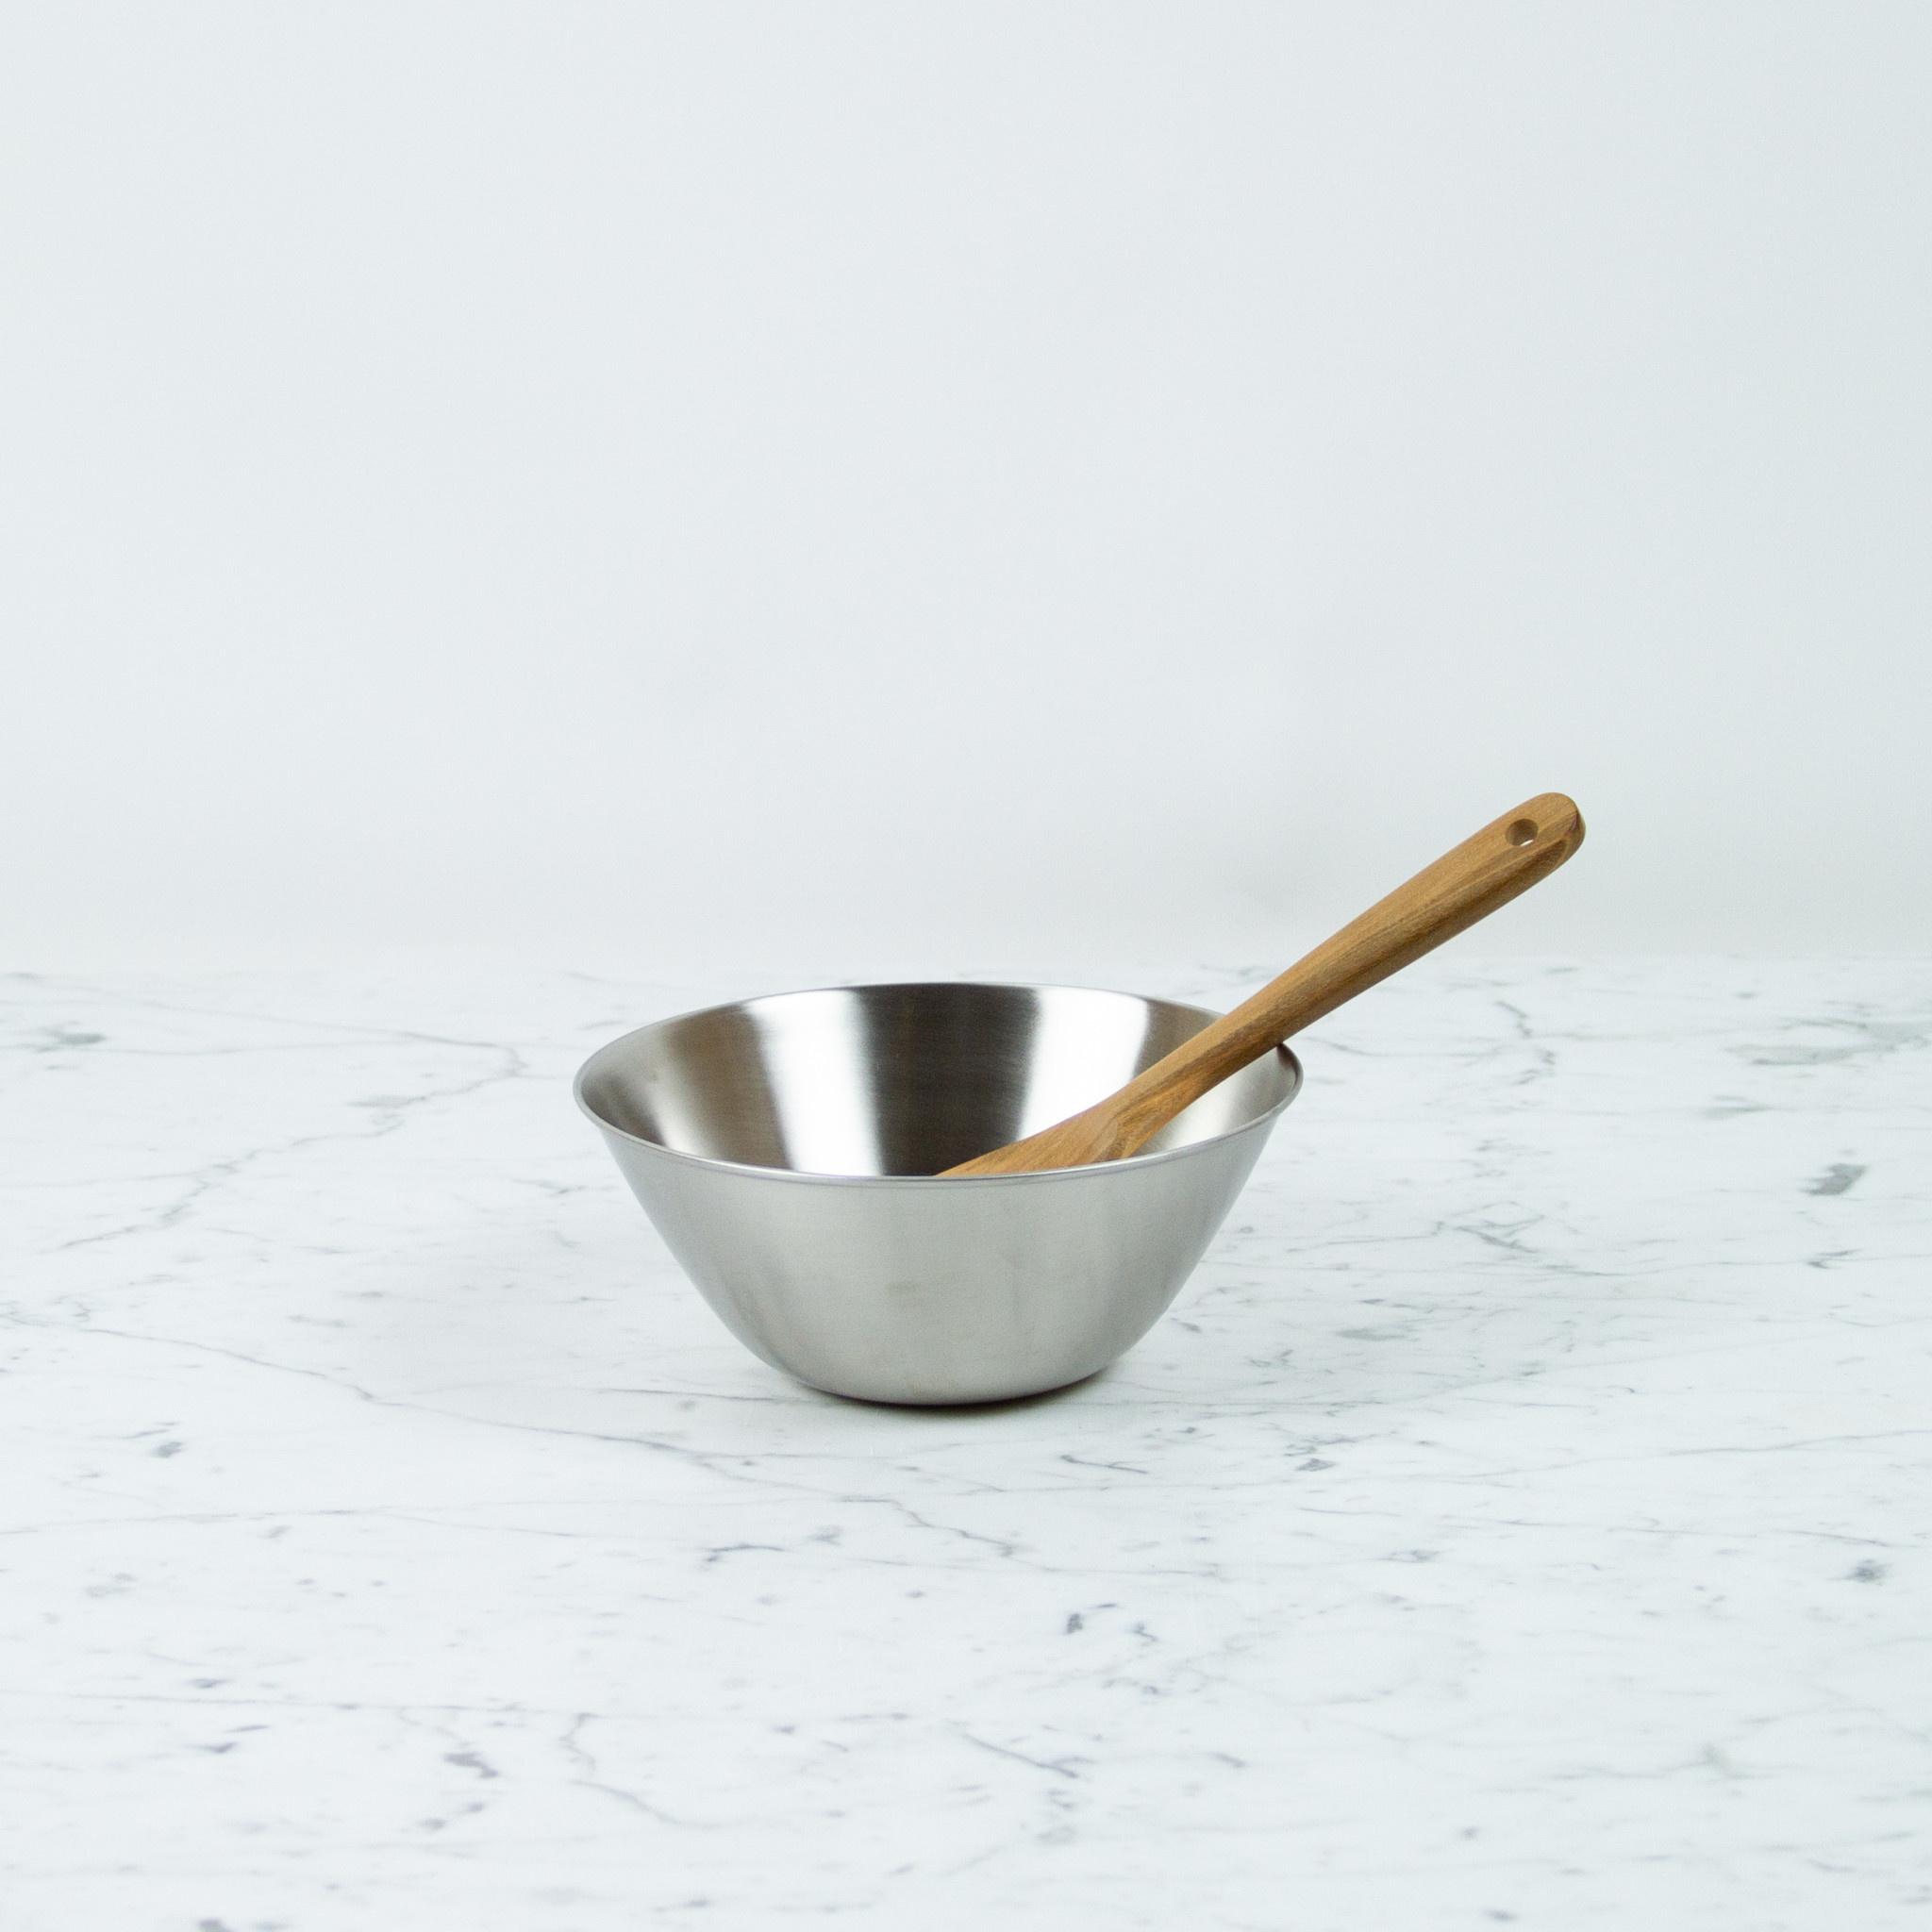 """Japanese Stainless Steel Mixing Bowl - 7.25"""""""